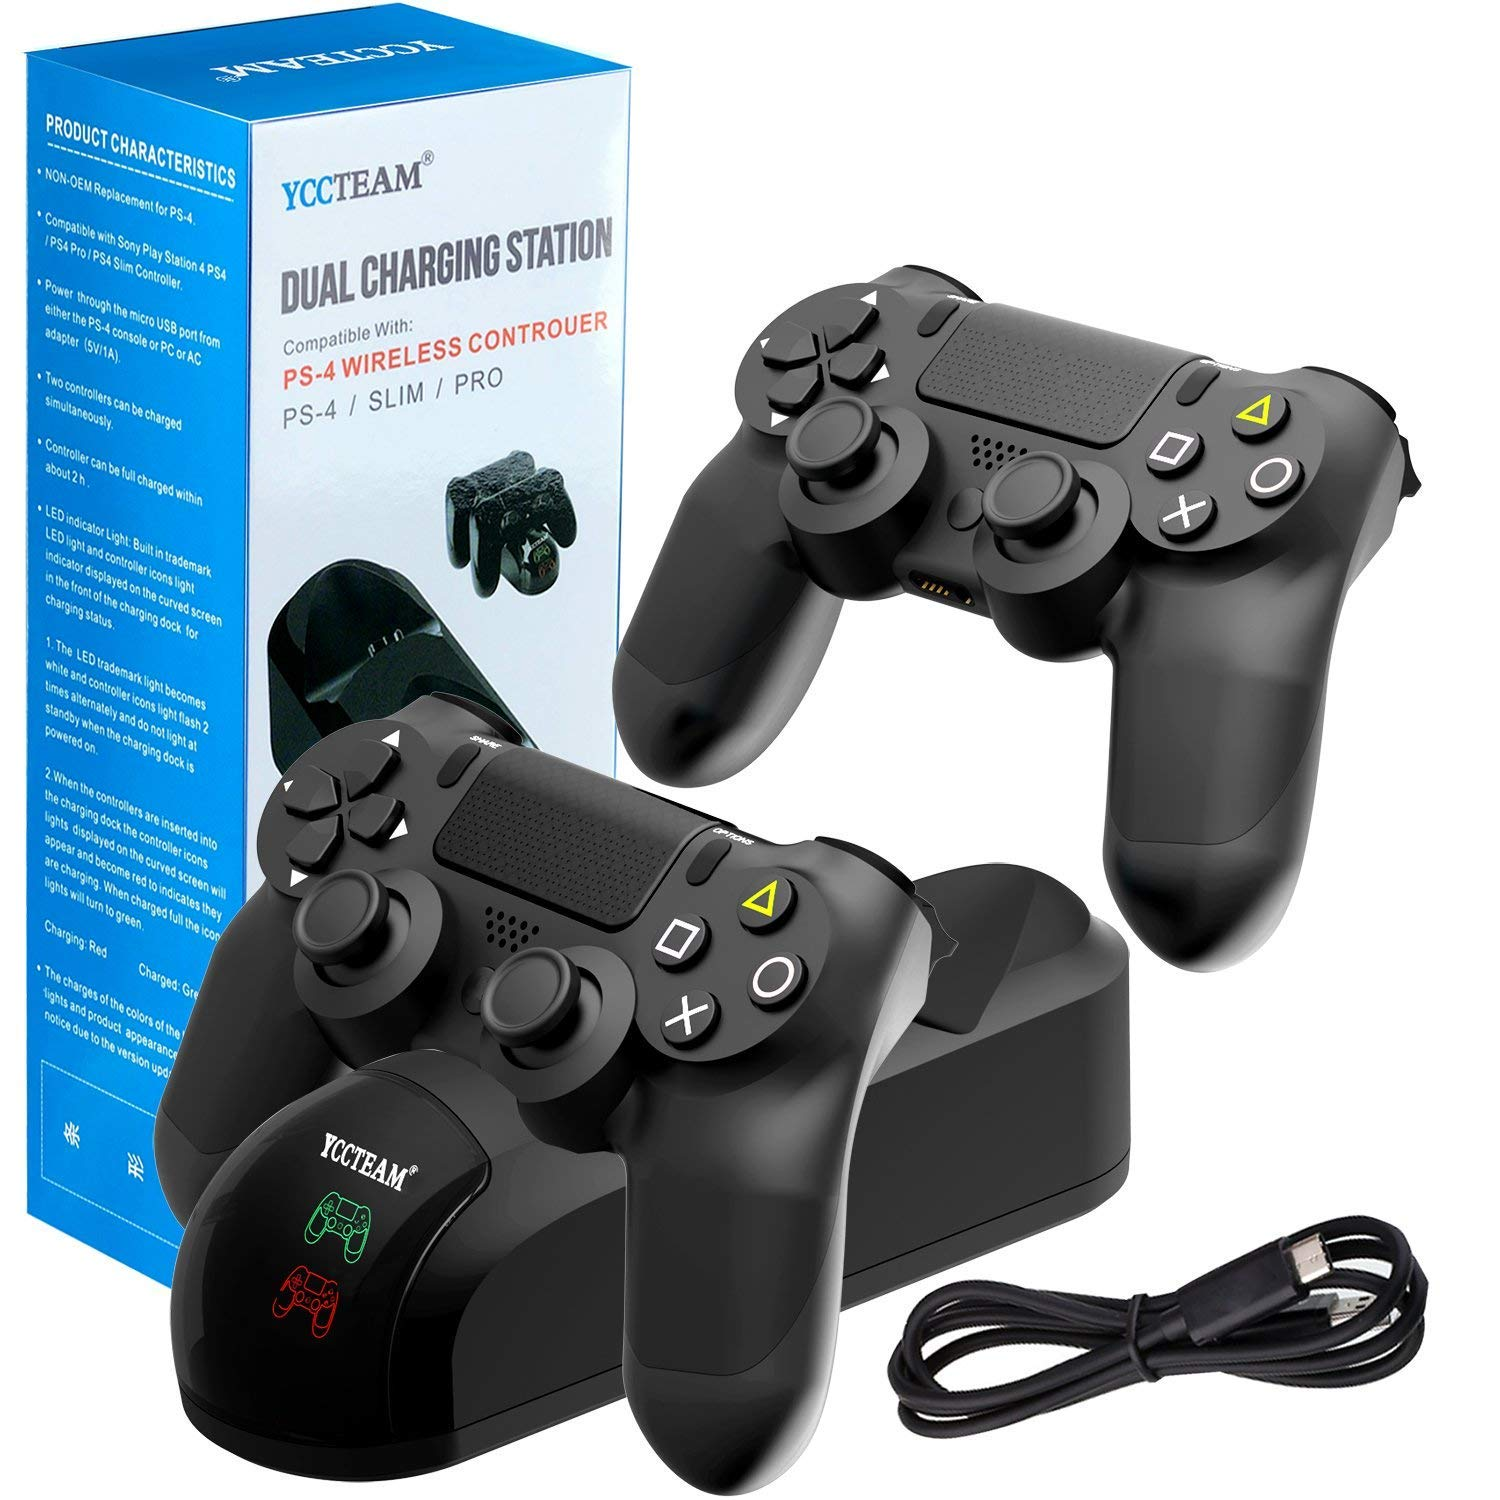 PS4 Controller Charger Charging Station, Dual USB Charger Charging Station Stand for Sony PlayStation 4 PS4 and PS4 Pro Controller